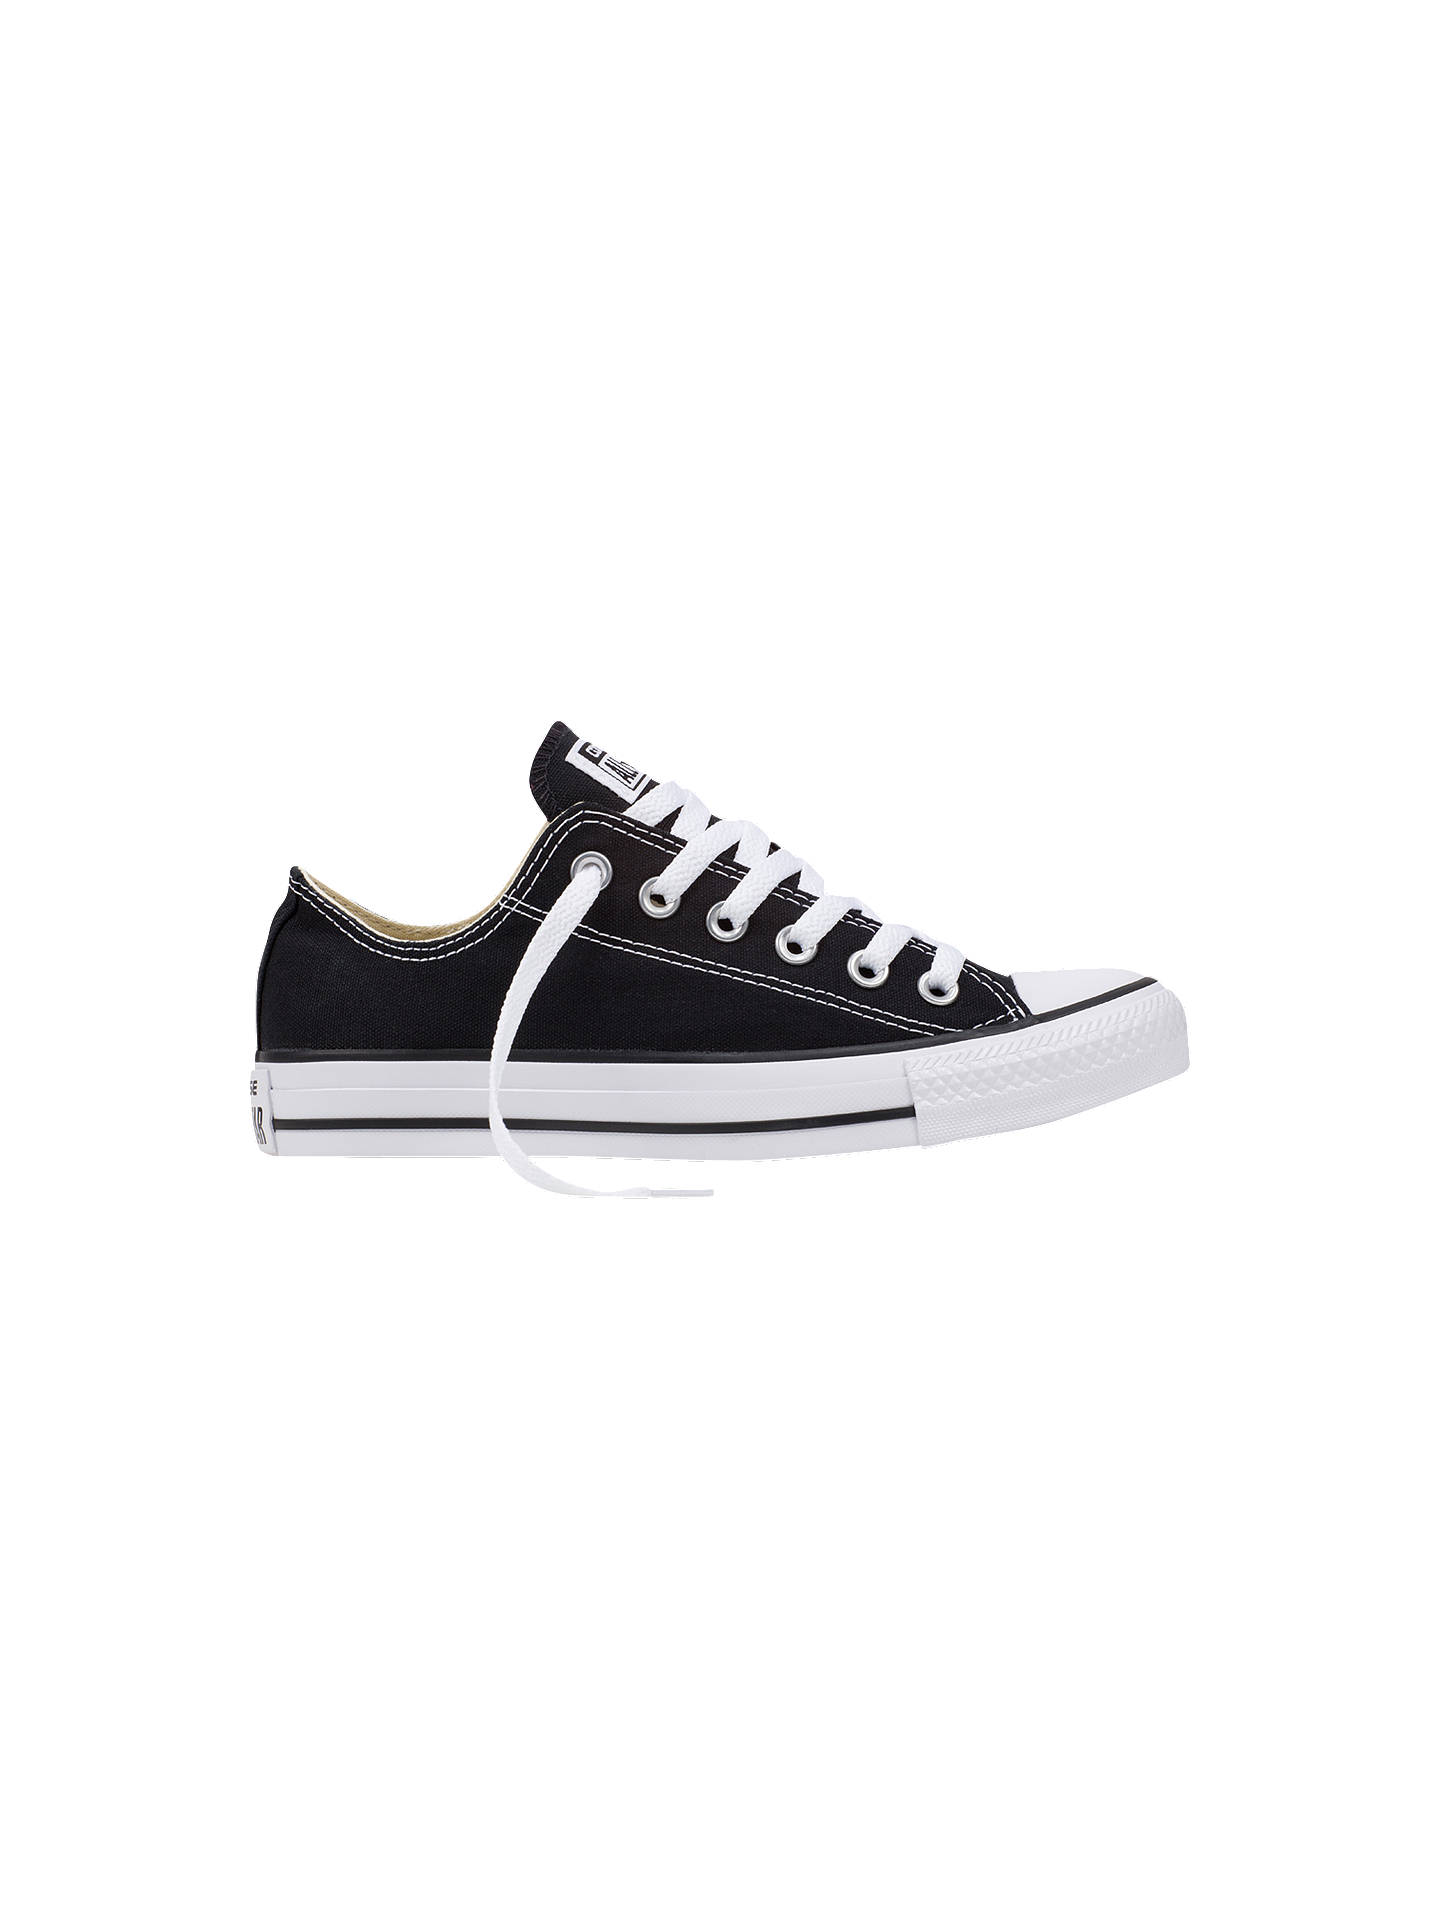 66d50695542a Converse Chuck Taylor All Star Ox Trainers at John Lewis   Partners